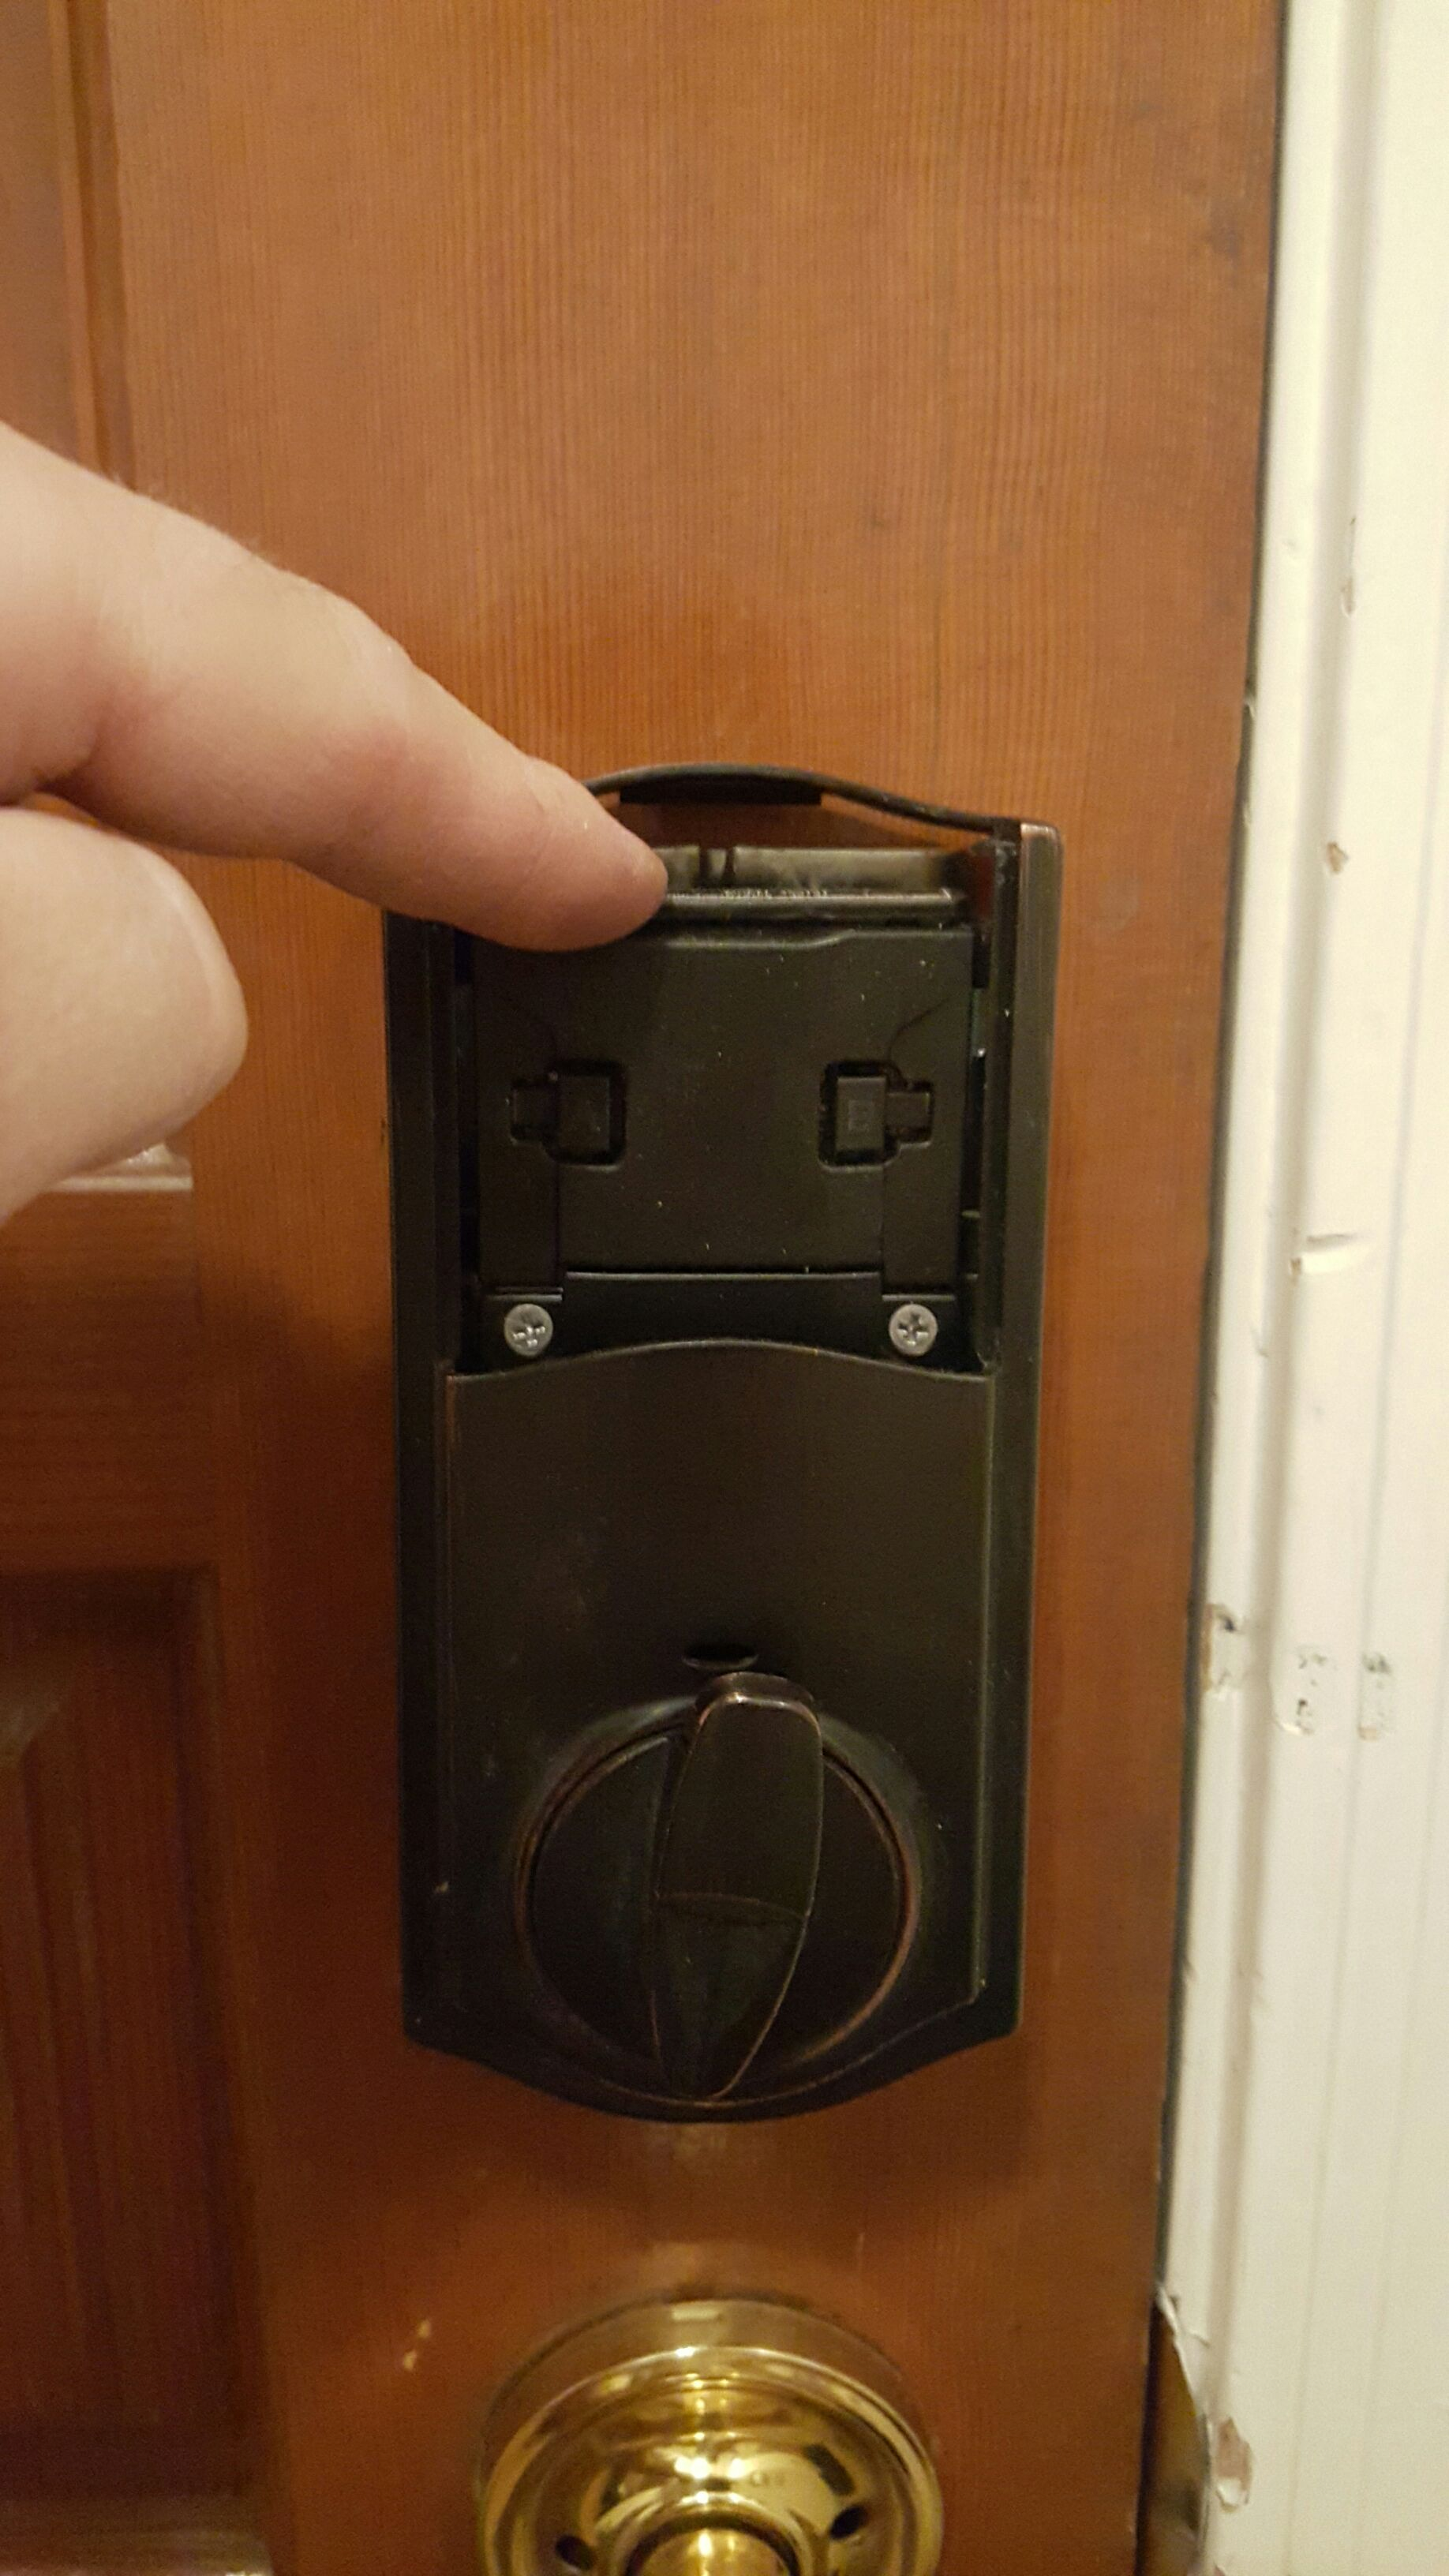 Picture of Find Empty Space Inside the Unit for a Switch.